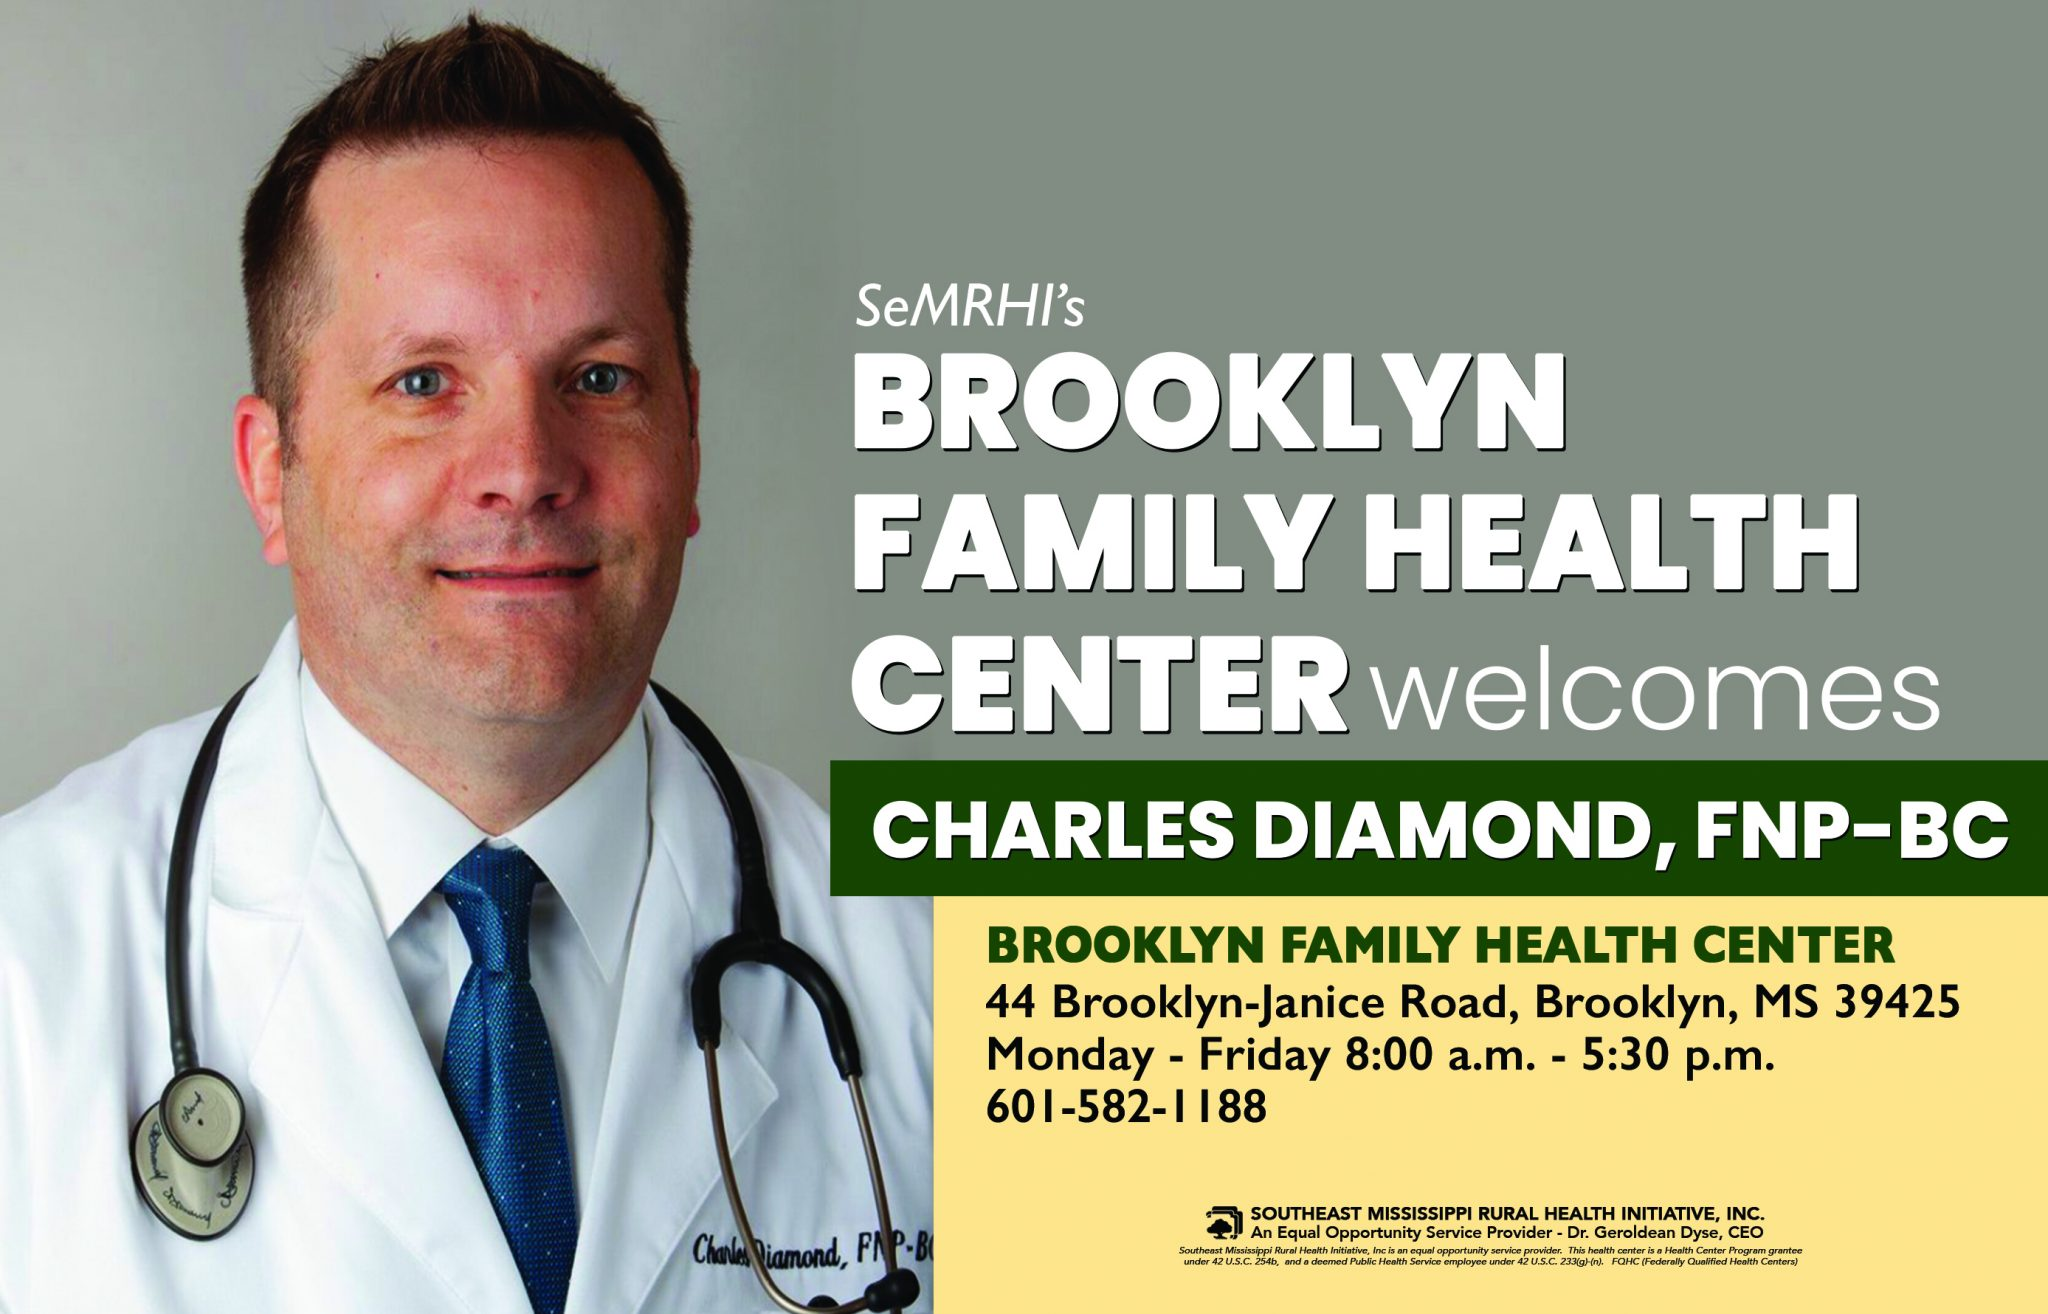 Brooklyn Family Health Center Welcomes Charles Diamond, FNP